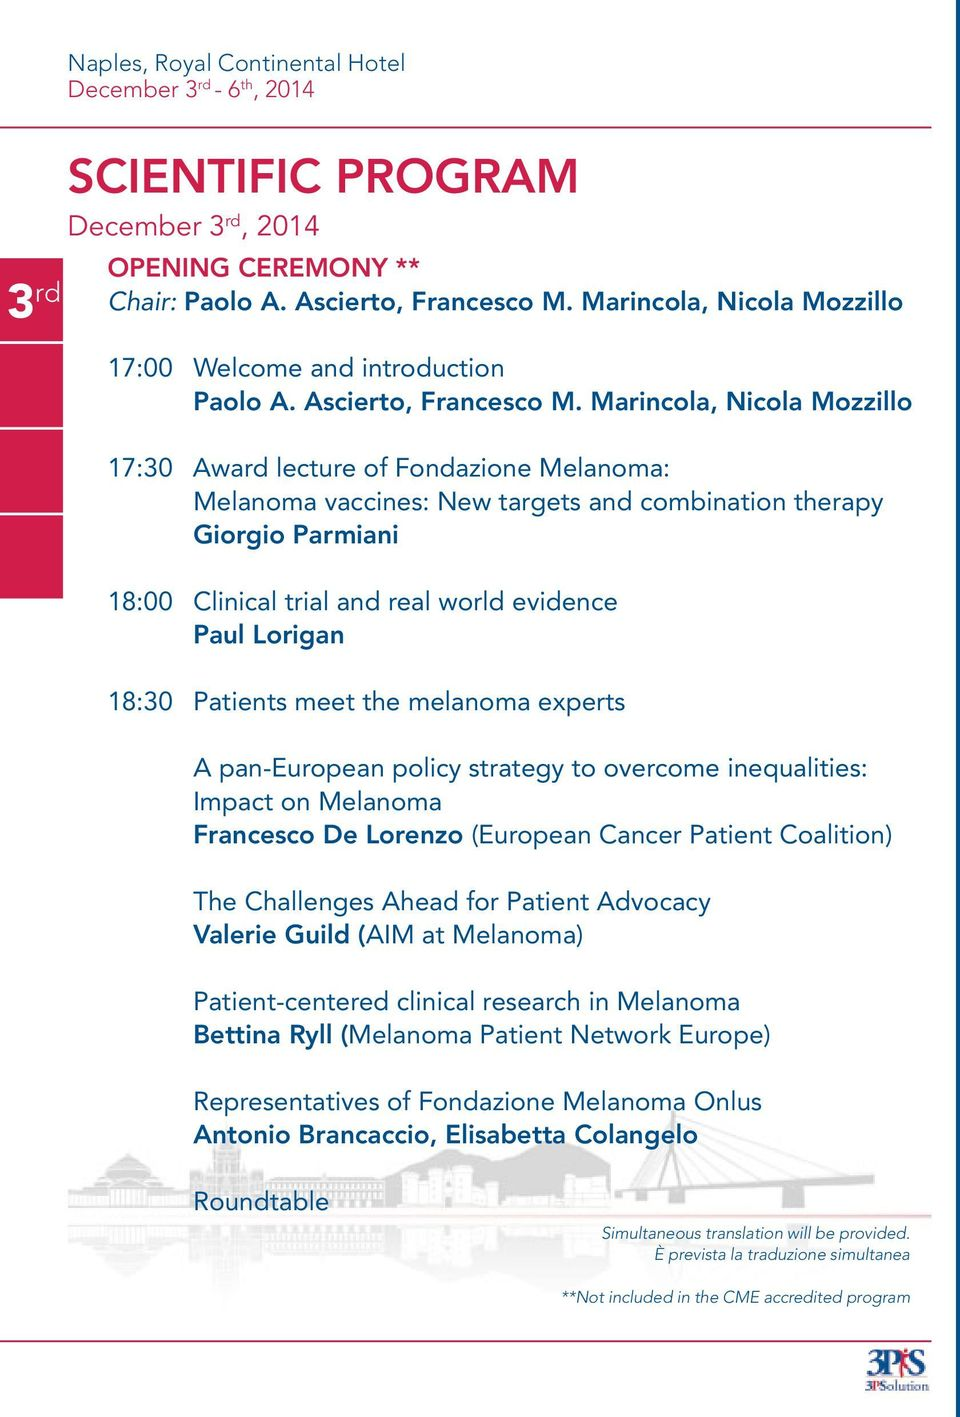 Marincola, Nicola Mozzillo 17:30 Award lecture of Fondazione Melanoma: Melanoma vaccines: New targets and combination therapy Giorgio Parmiani 18:00 Clinical trial and real world evidence Paul